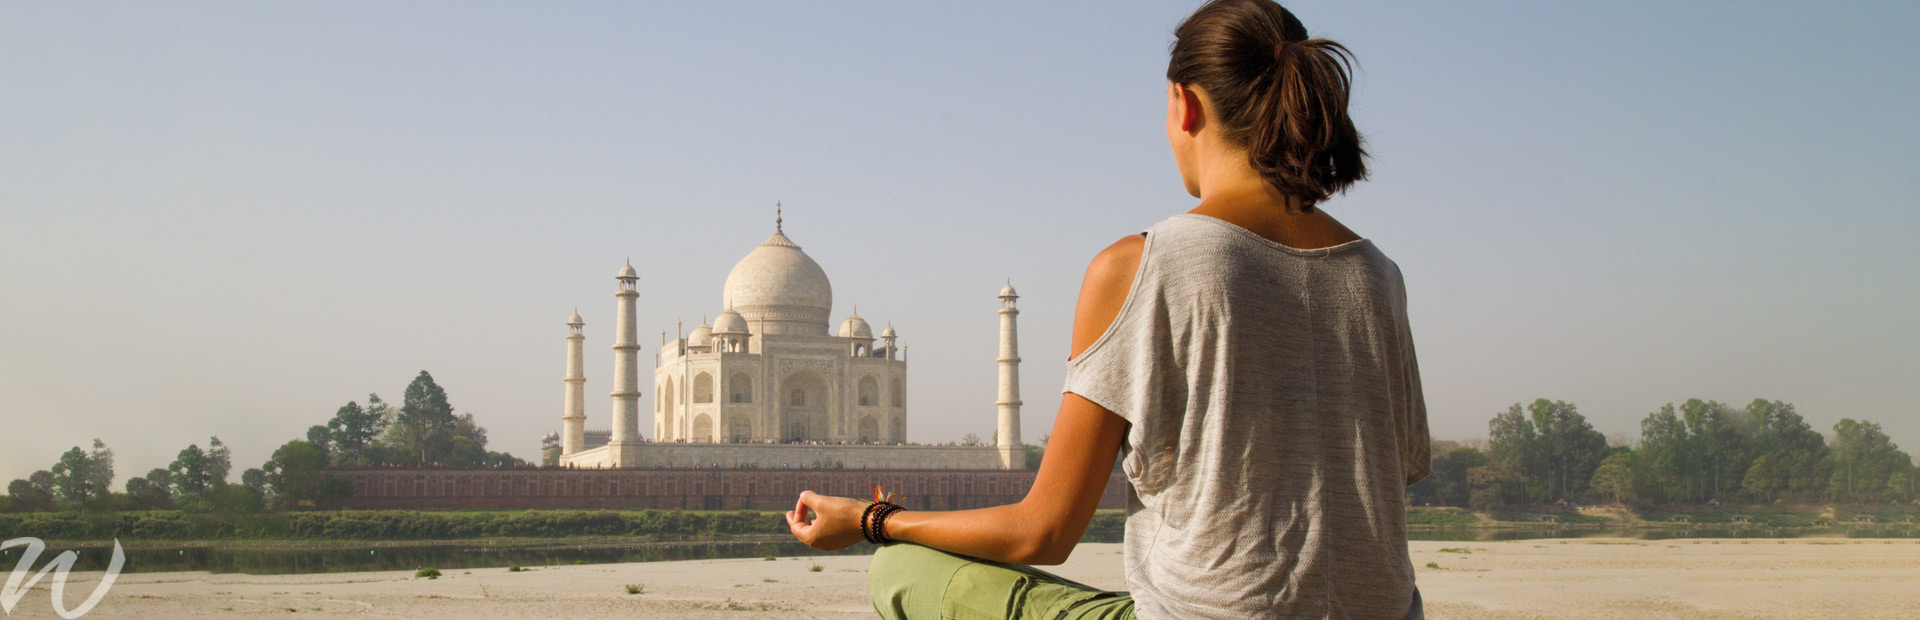 Meditation at Taj Mahal, wellness tourism